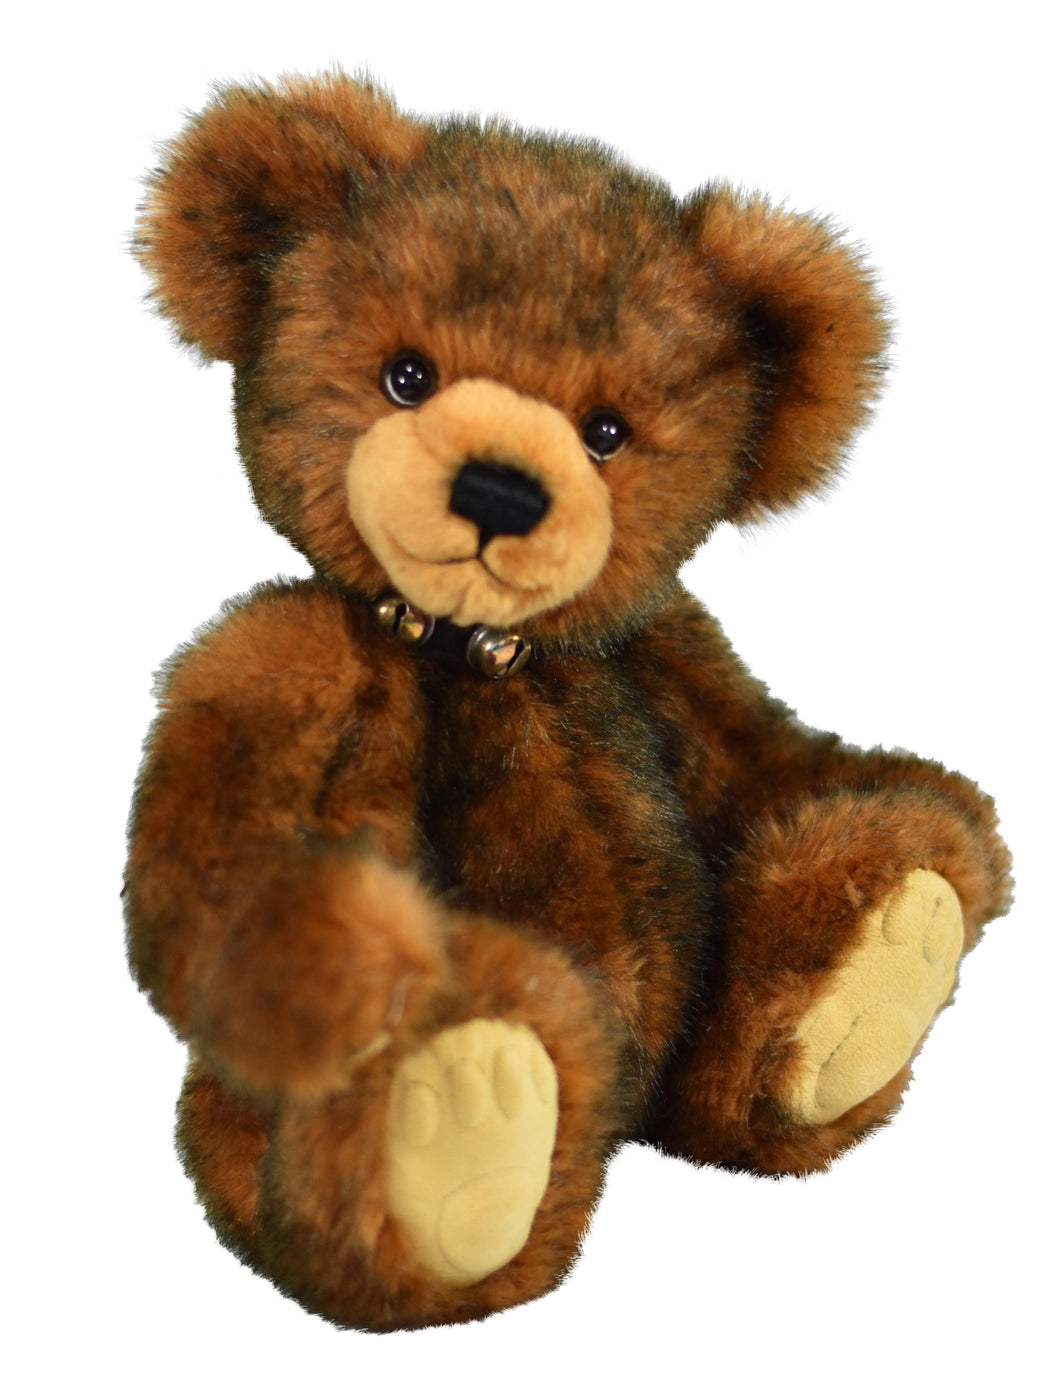 TEDDY WENDELIN / CLEMENS CLASSIC SOFT PLUSH BEAR